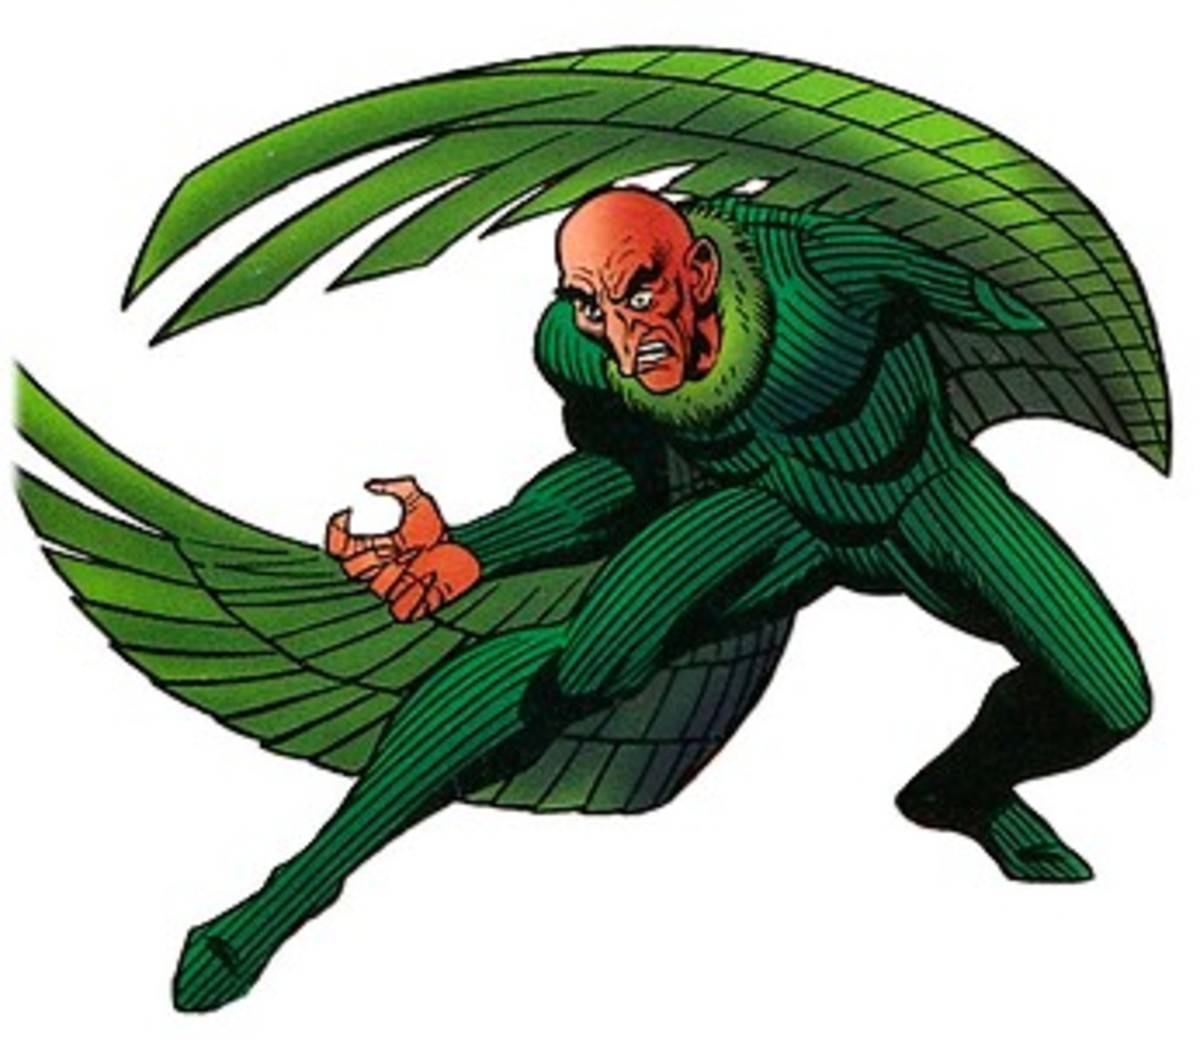 Clifton Shallot as the Vulture